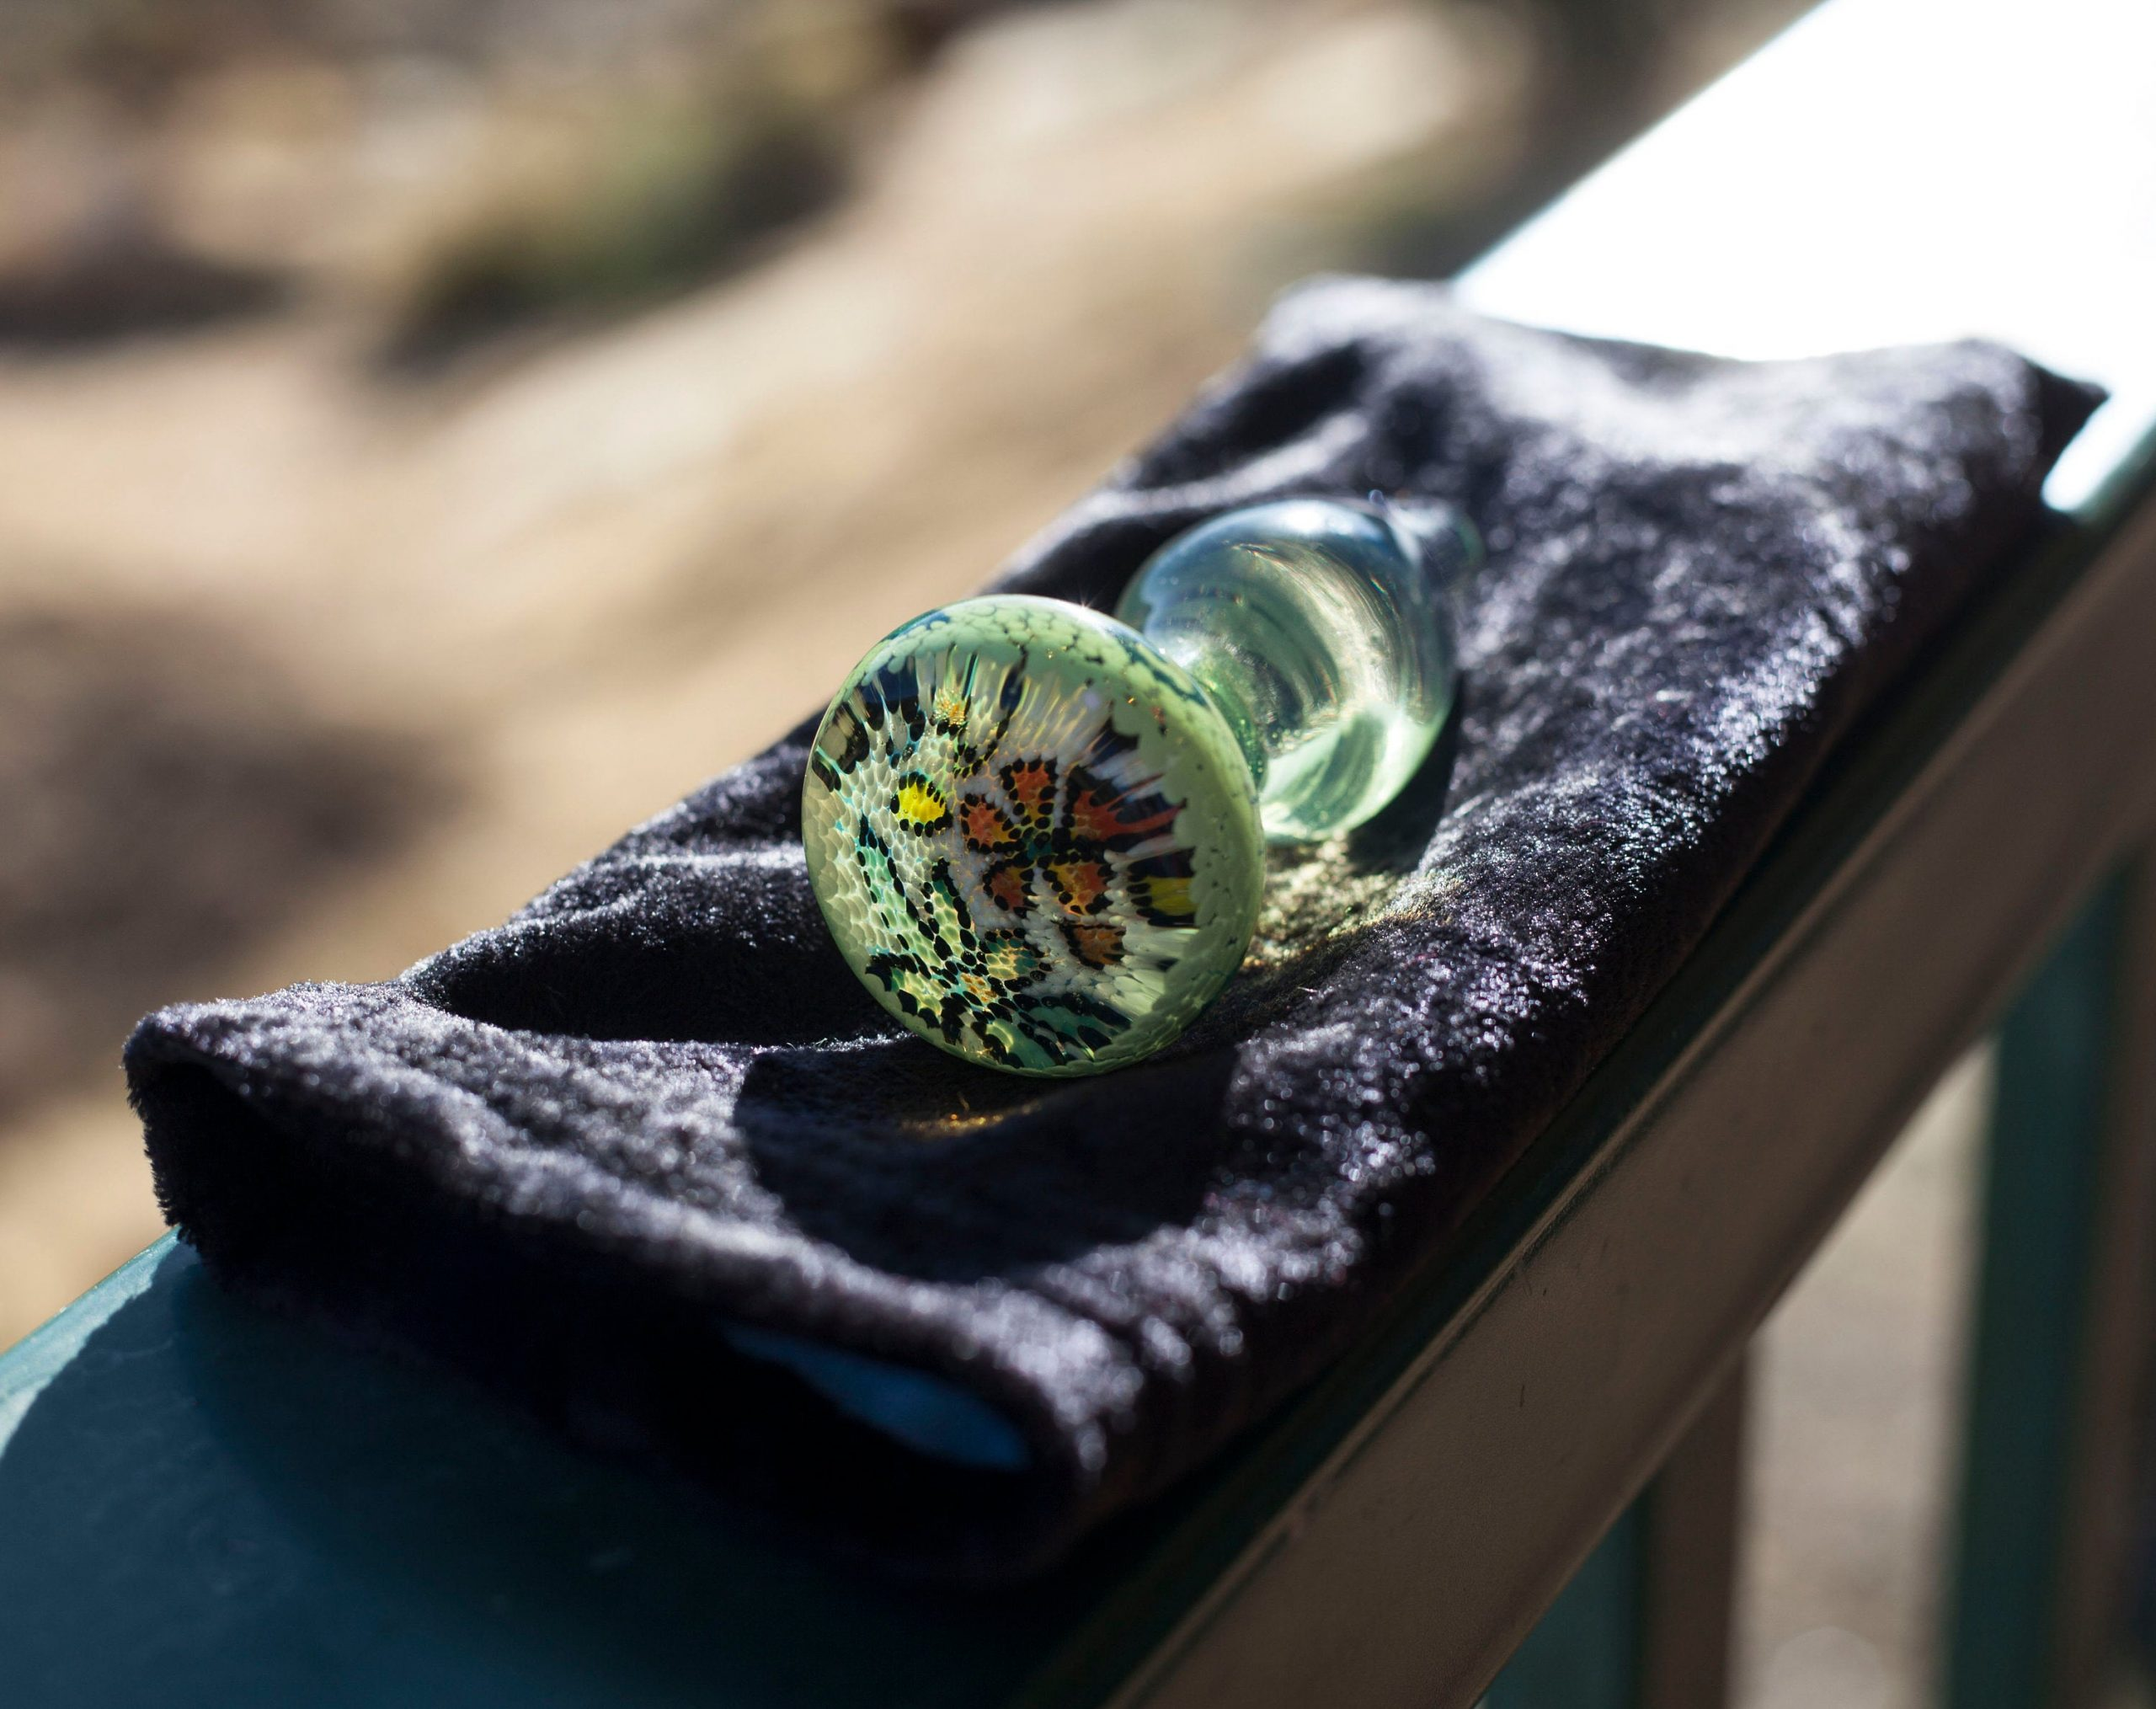 Glass Butt plug Tantra Tail Pointilist implosion artistic large handmade sea Slyme Buttplug One Of a Kind With Velvet Bag